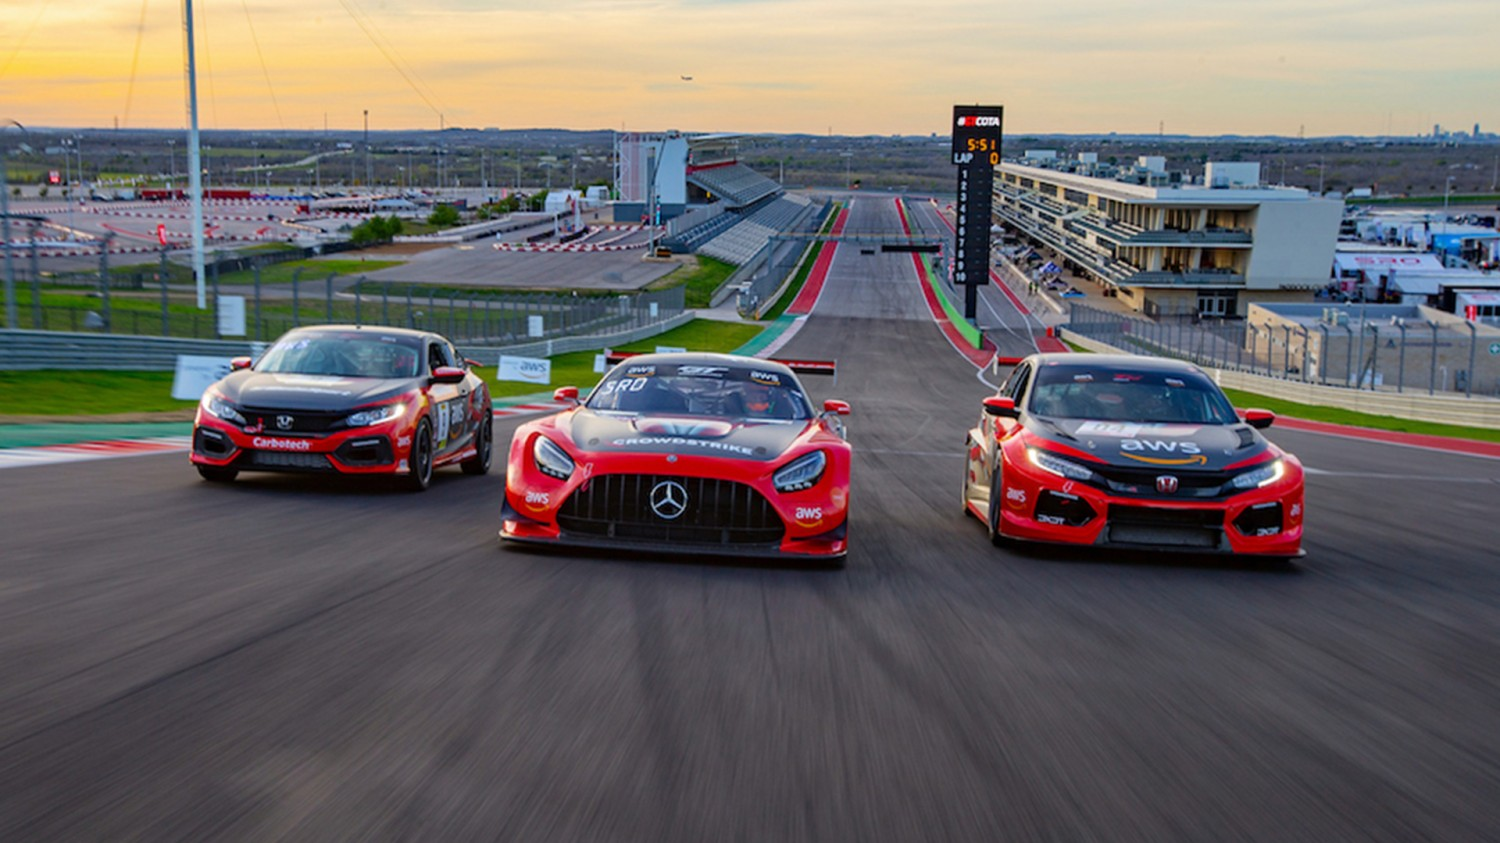 Championship Fights Heat Up as CrowdStrike Racing Returns to COTA